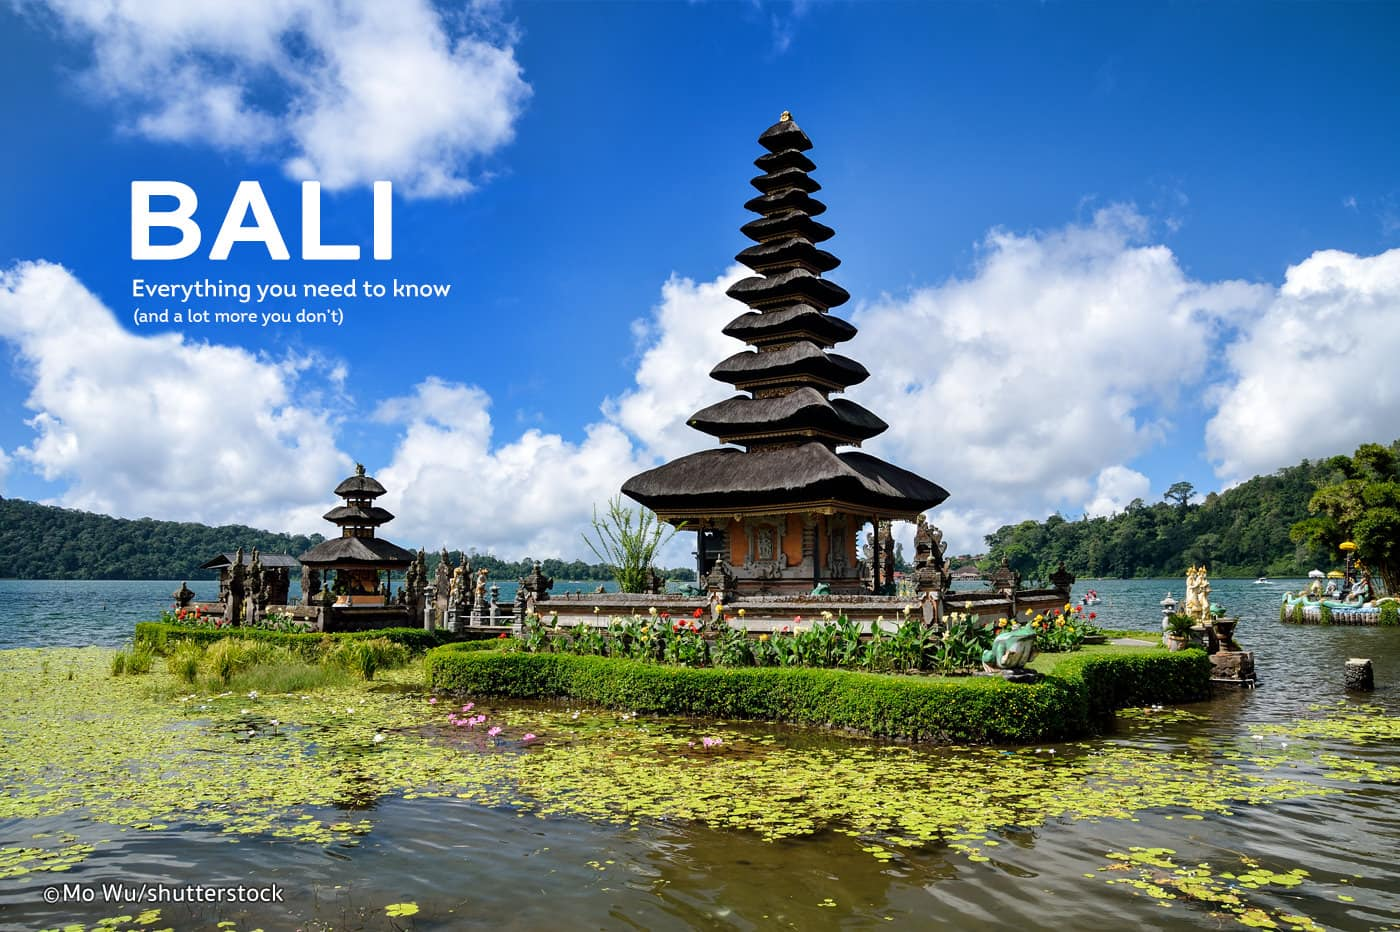 Los Angeles to Bali Indonesia $561-$599 RT Airfares on Singapore Airlines (Limited Travel Oct-Nov 2019)